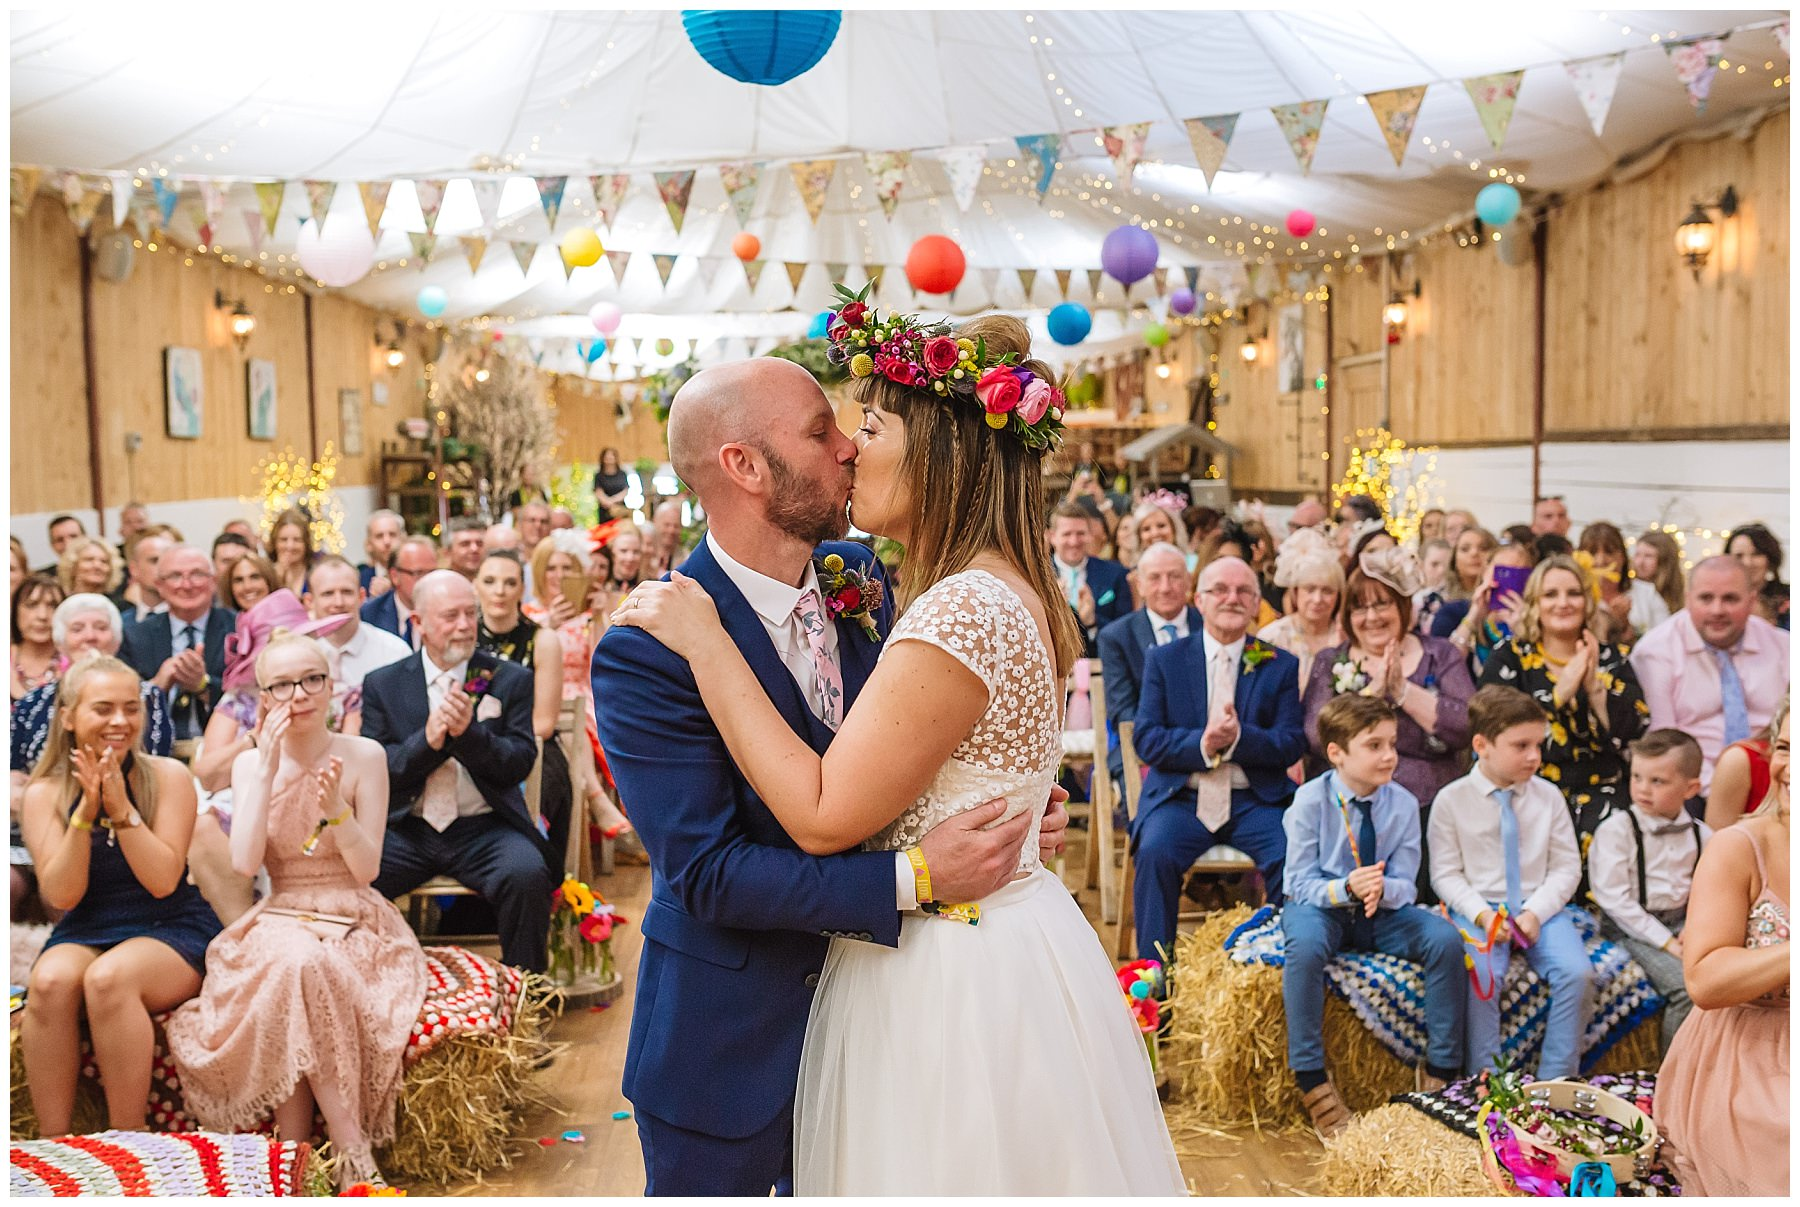 First kiss at the wellbeing farm